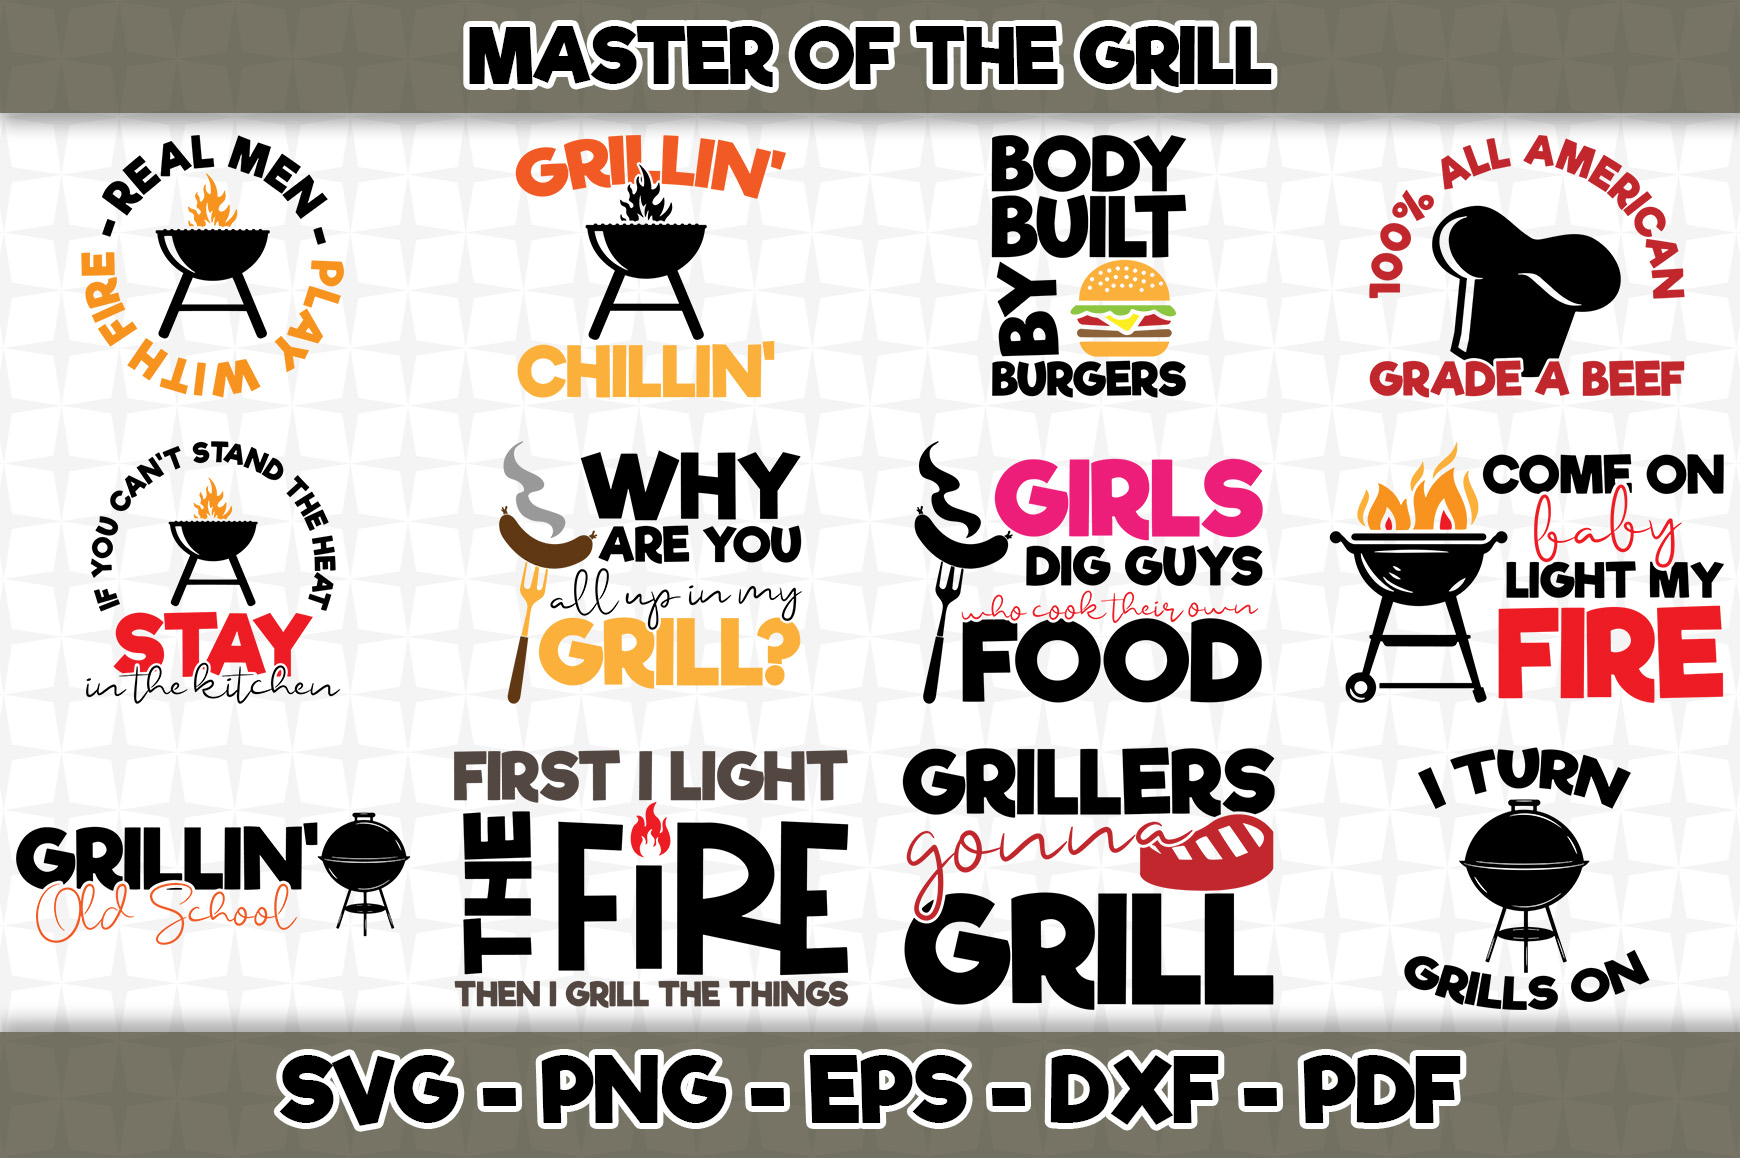 Download Free Master Of The Grill Bundle Pack Graphic By Svgexpress for Cricut Explore, Silhouette and other cutting machines.